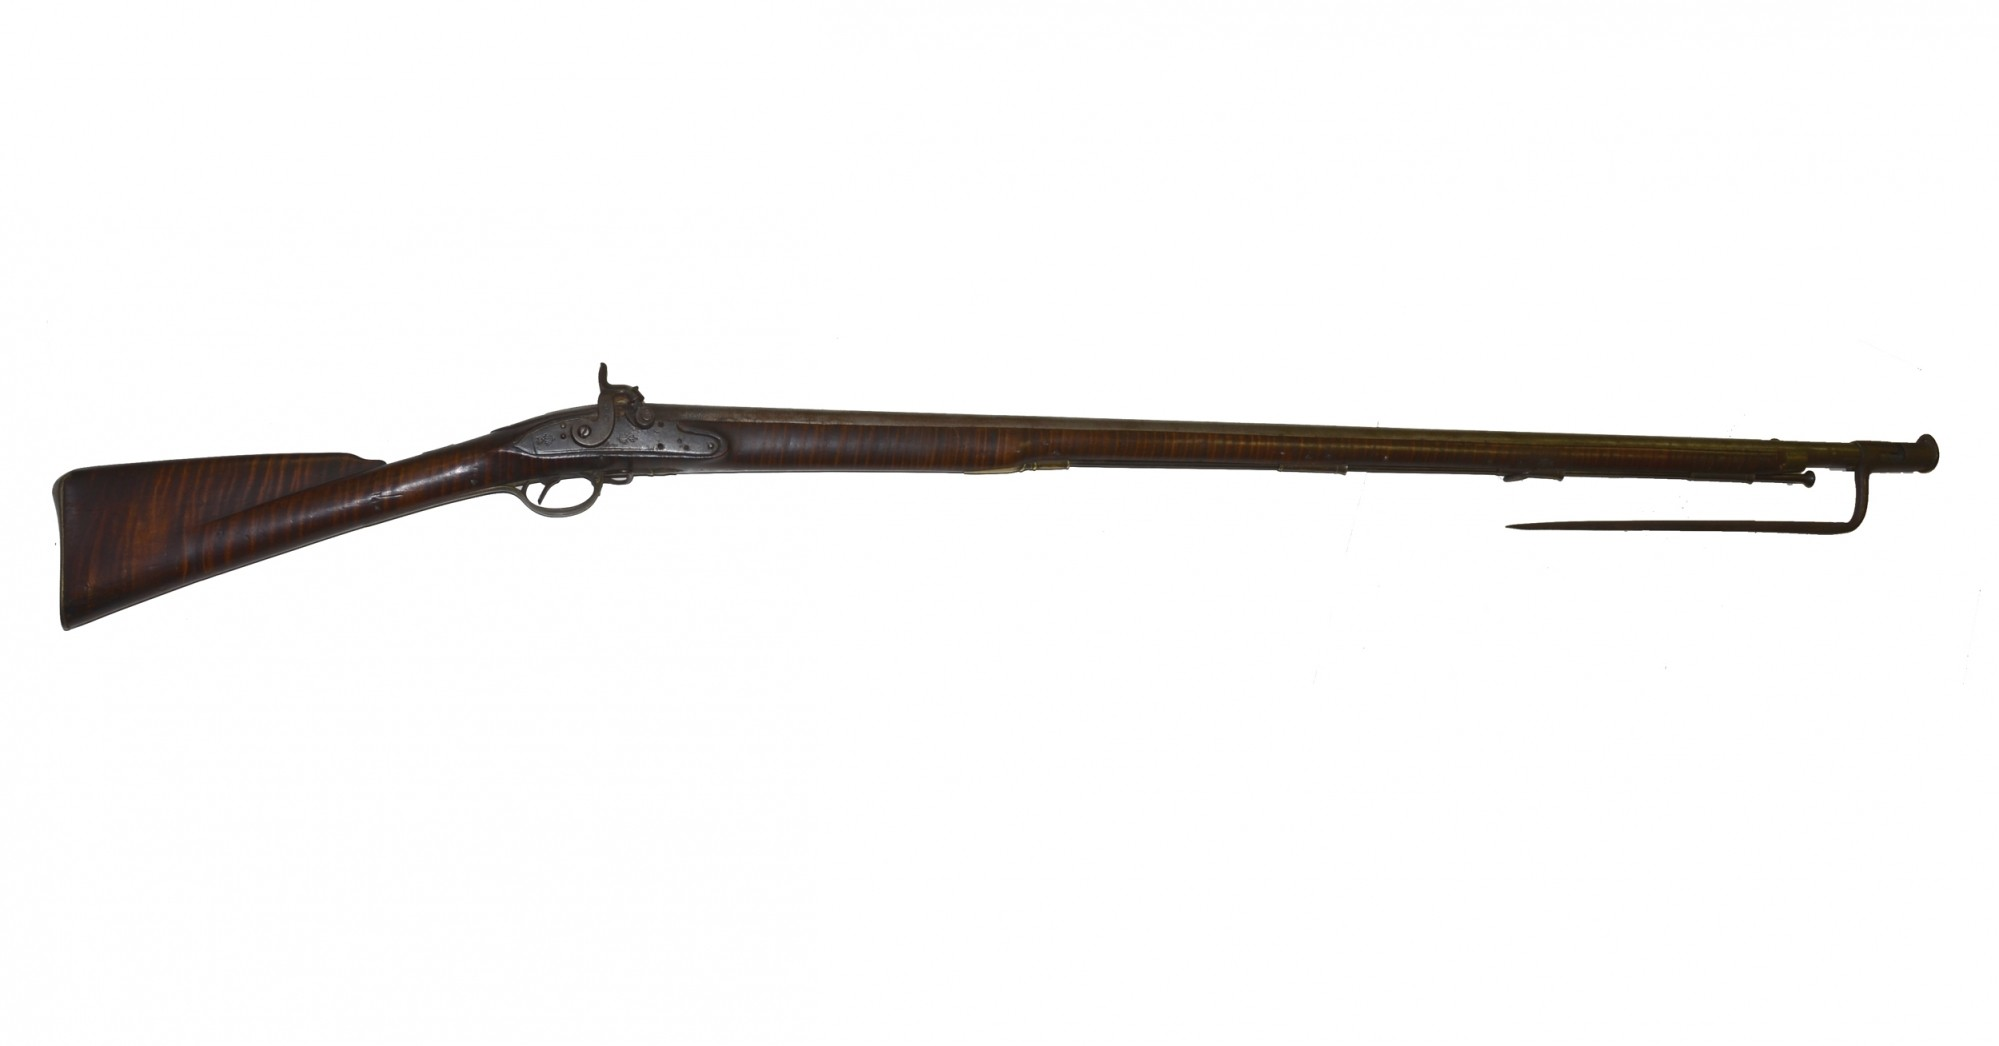 NEW ENGLAND MILITIA PERCUSSION MUSKET WITH BAYONET